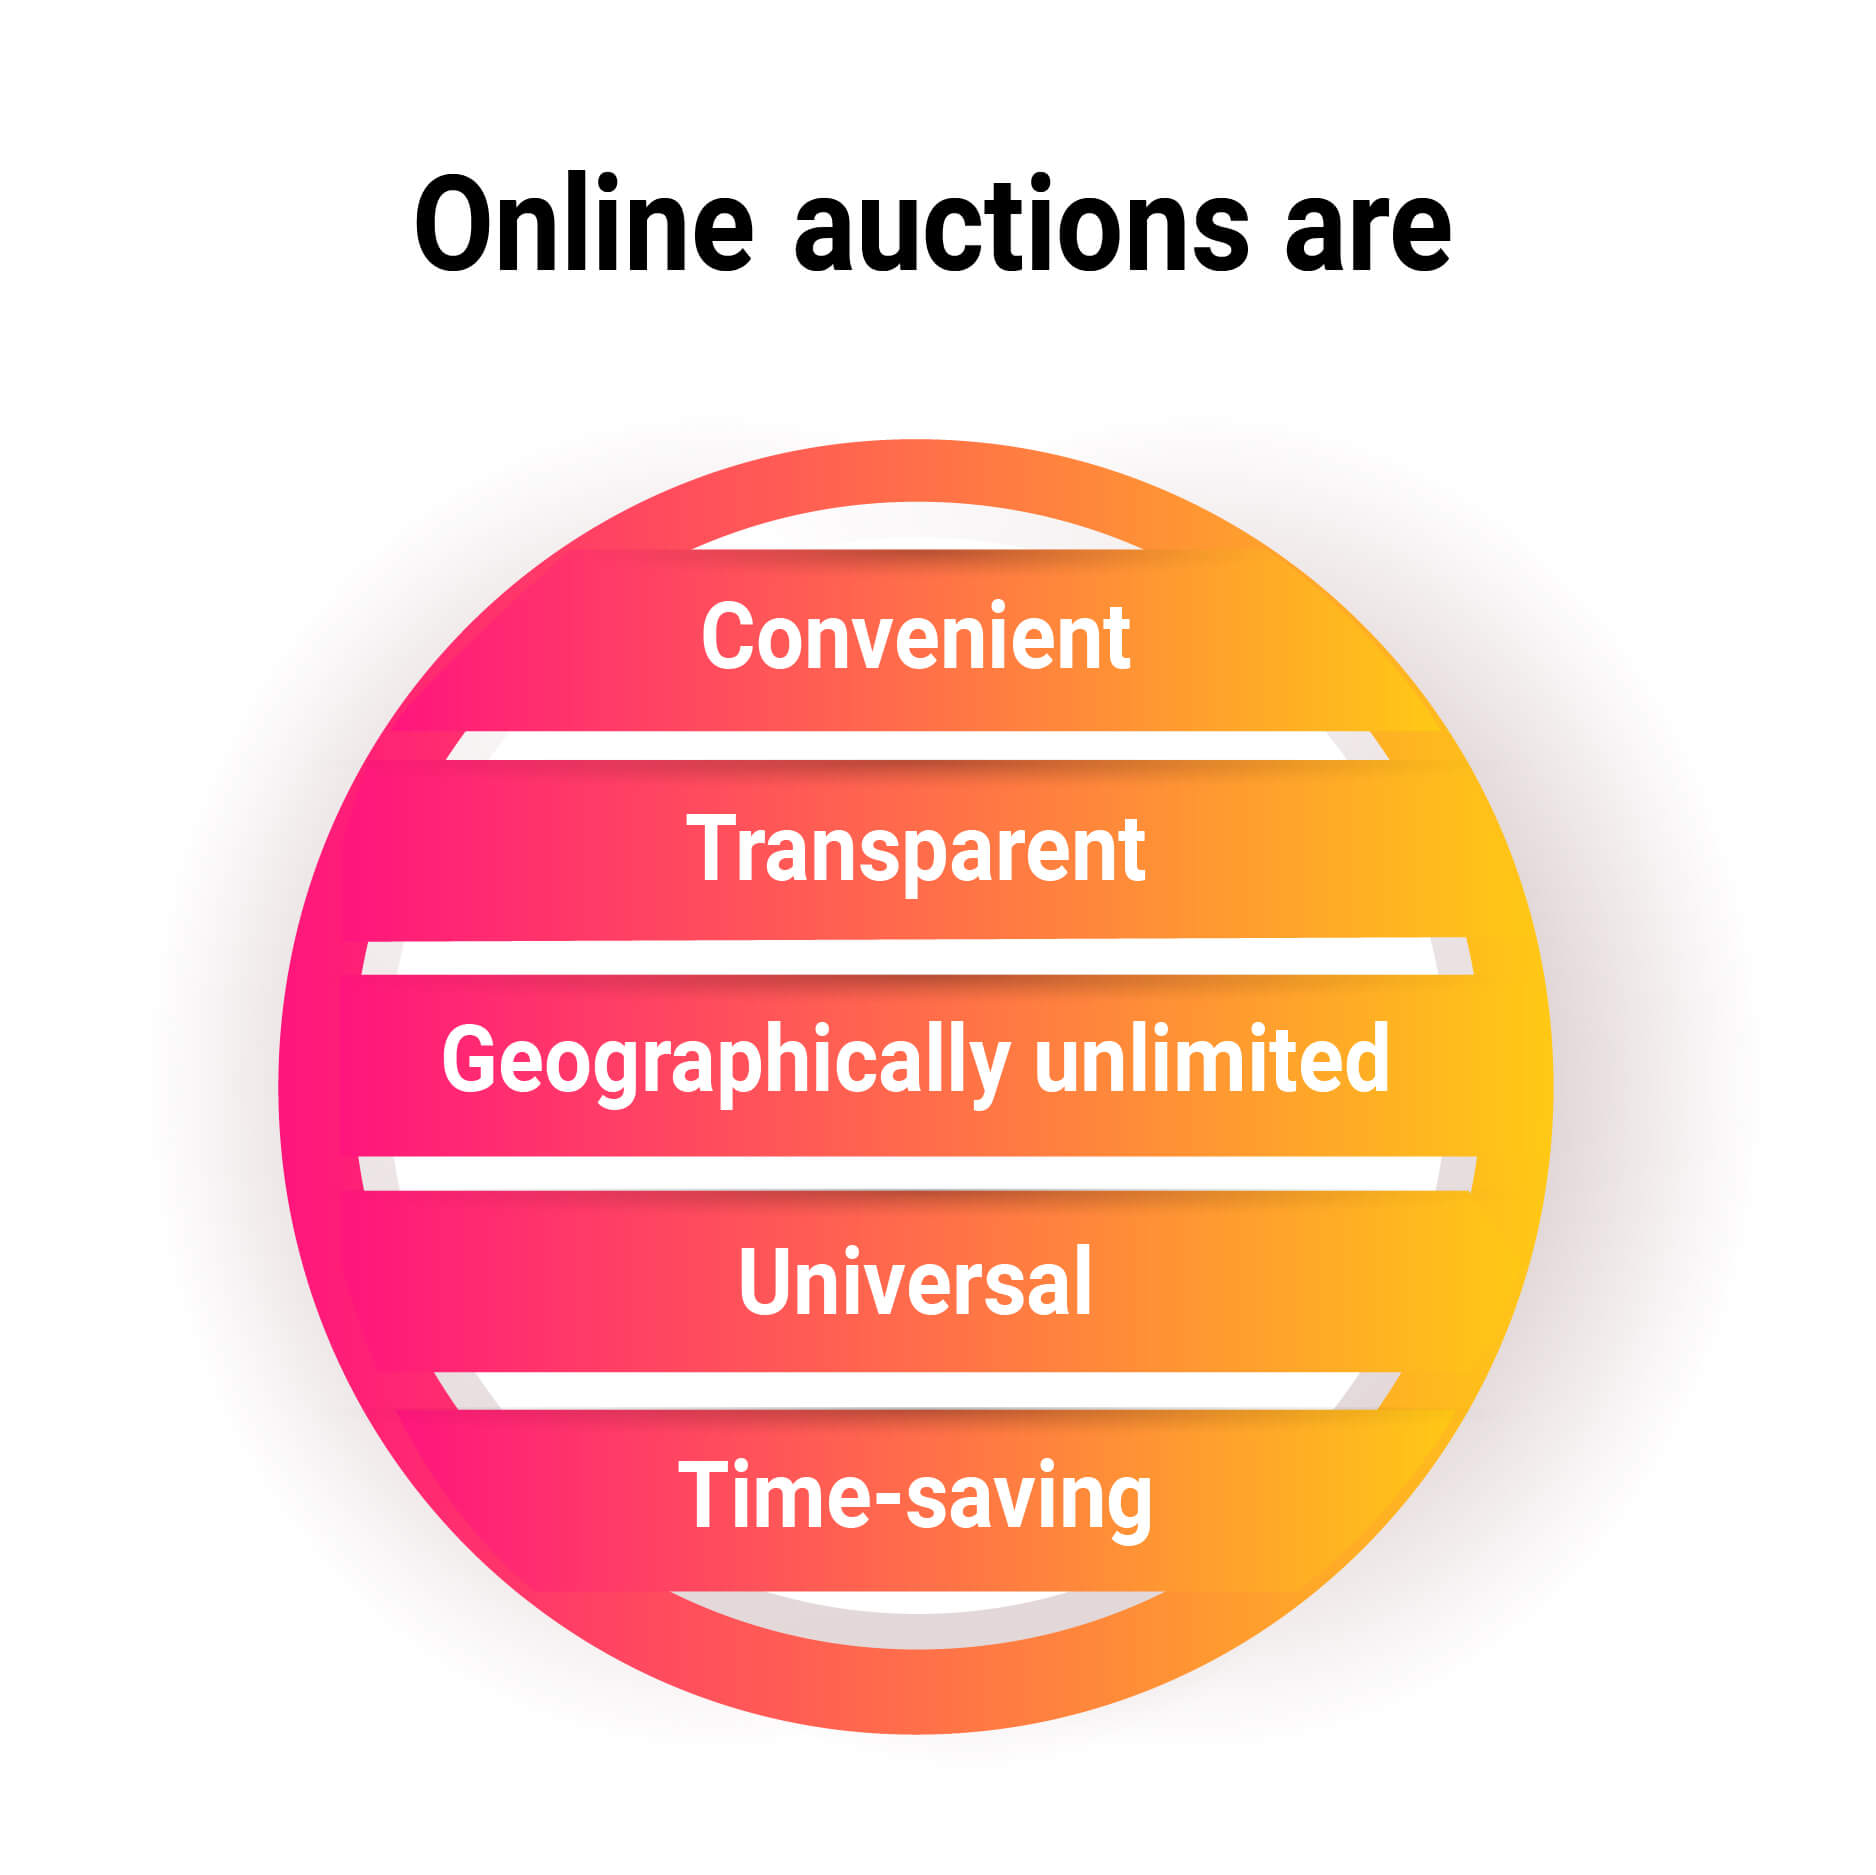 Online auctions are convenient, transparent, geographically unlimited, universal, and time-saving.